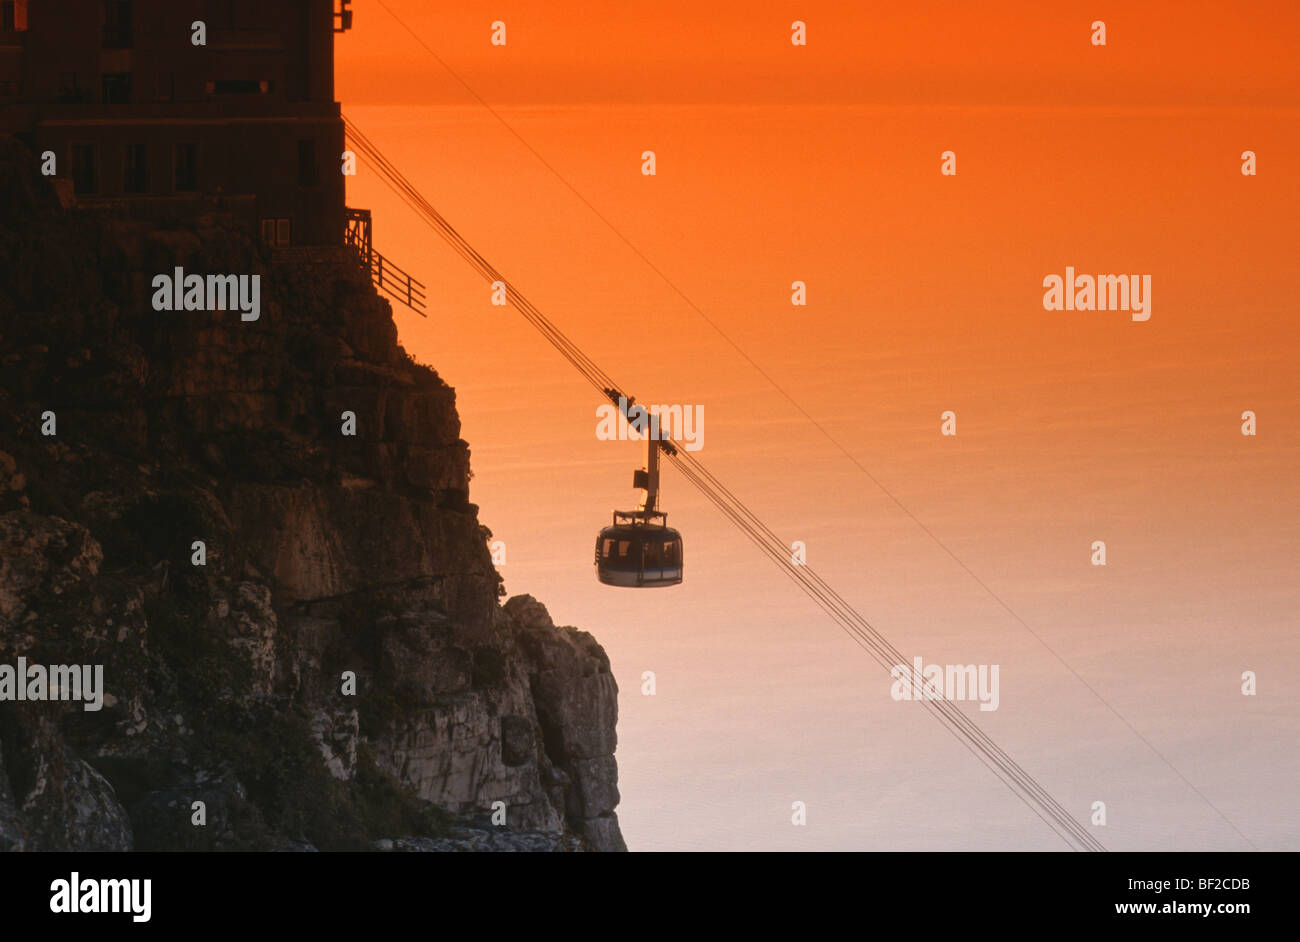 Cable Car, Table Mountain, Cape Town, Western Cape Province, South Africa - Stock Image